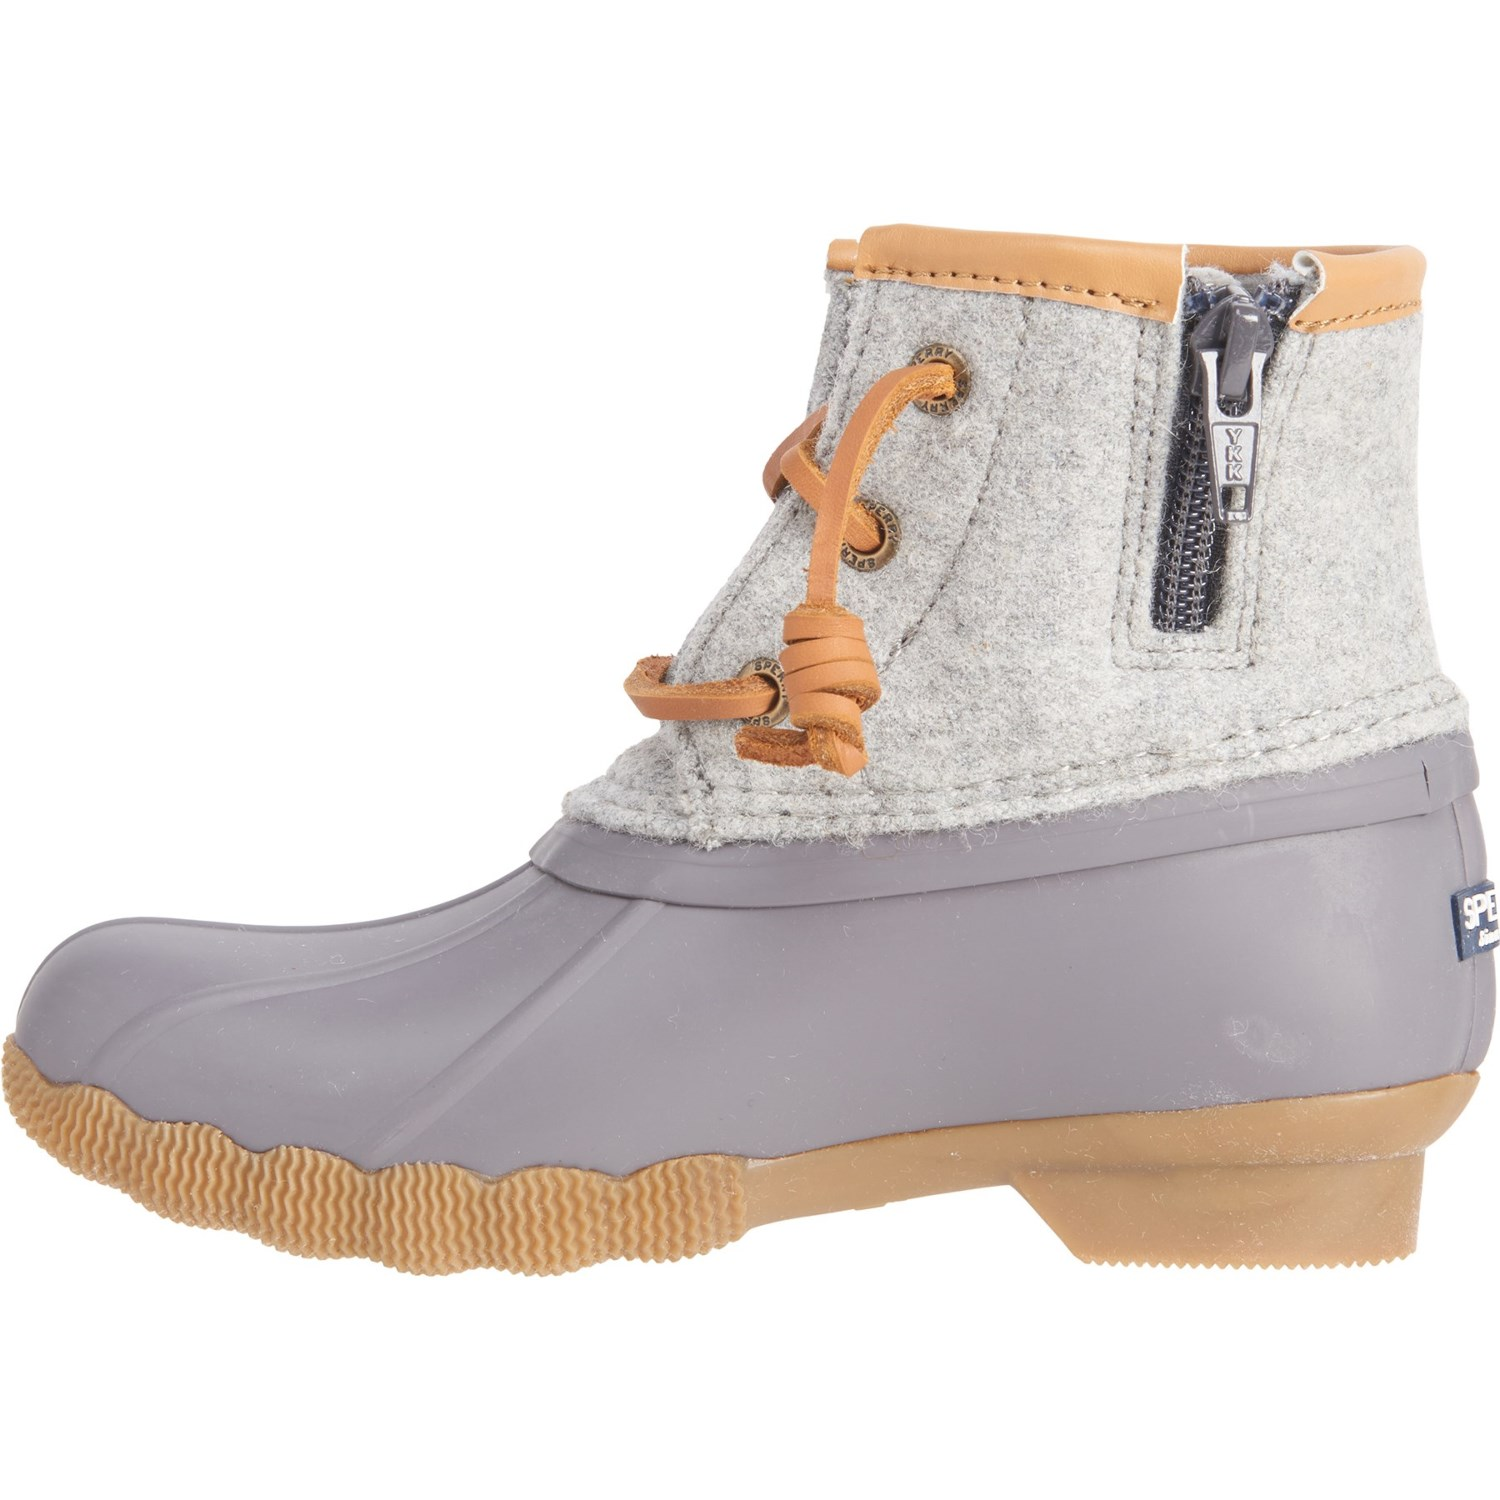 Sperry Saltwater Duck Boots (For